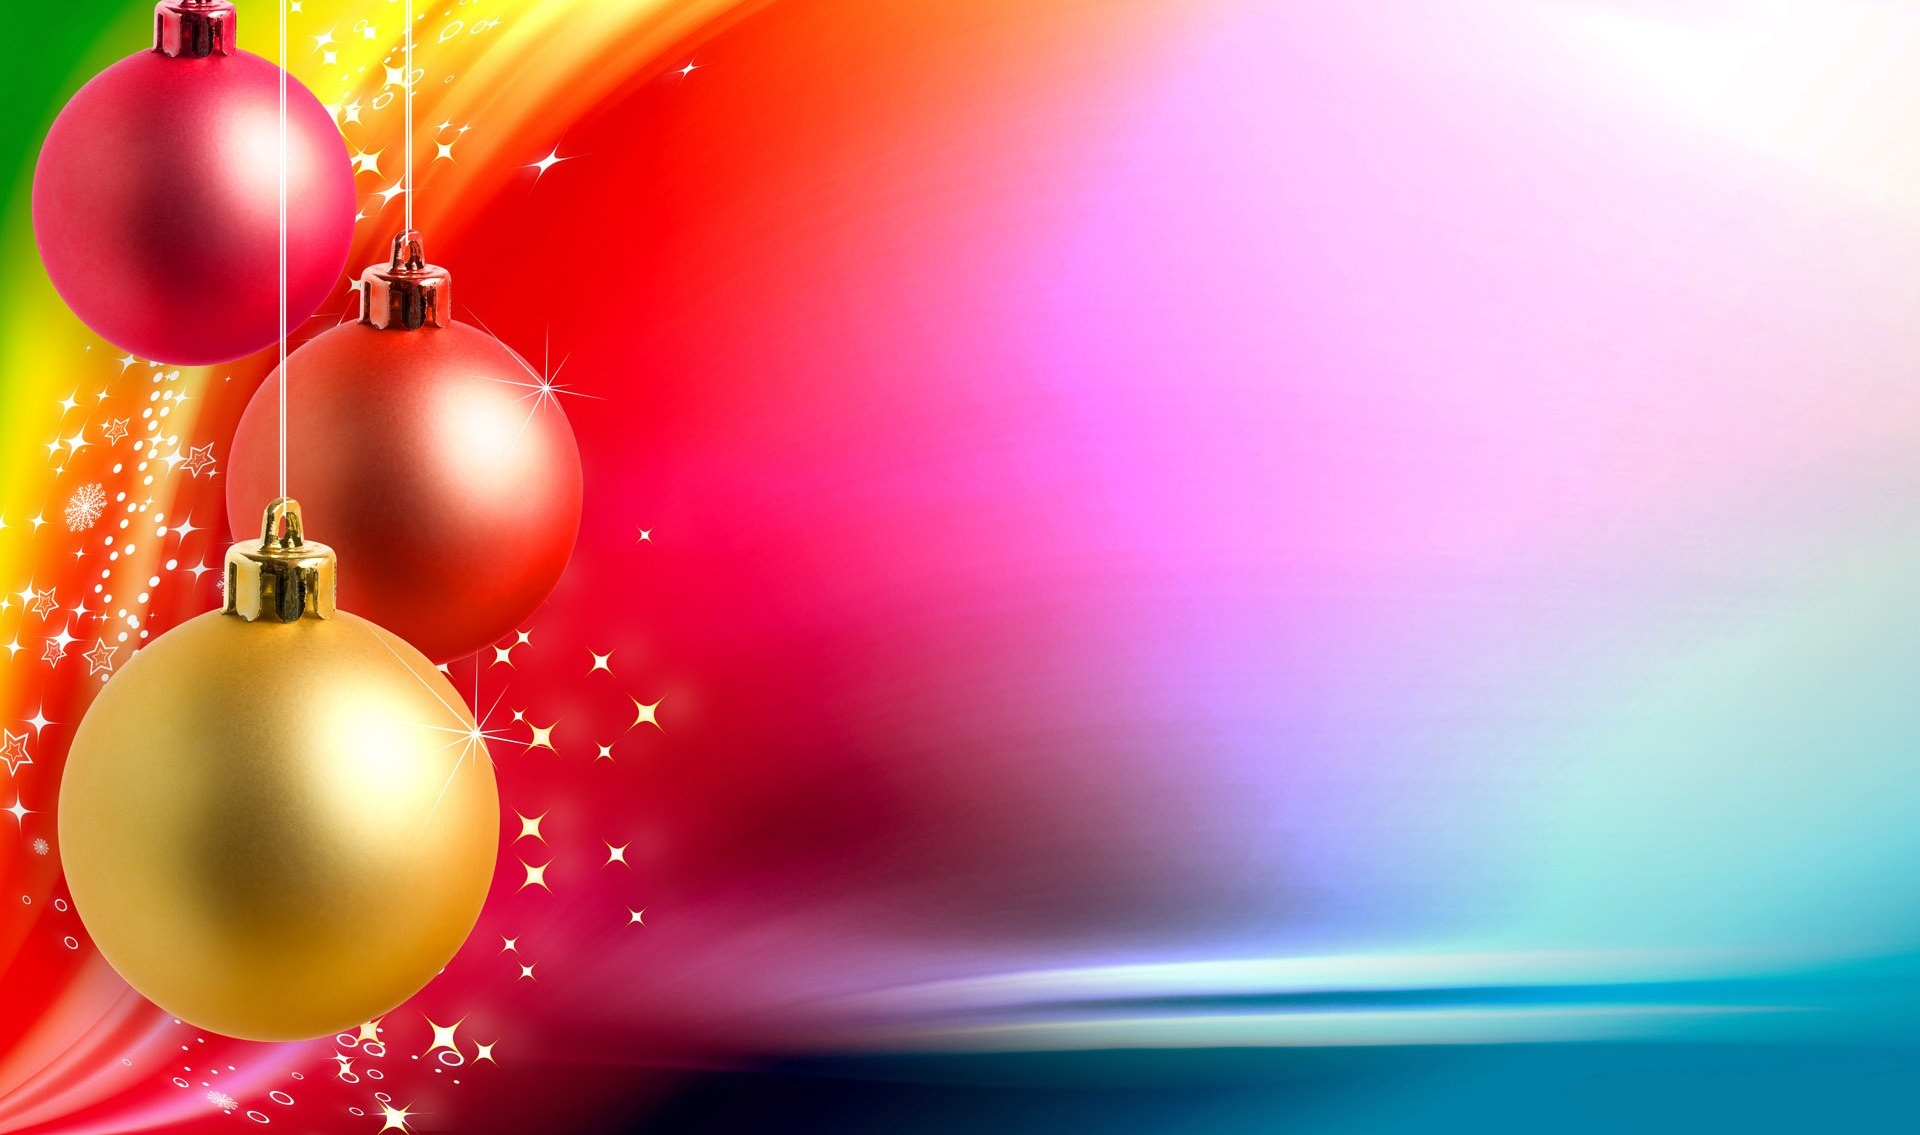 christmas wallpaper for desktop | pixelstalk